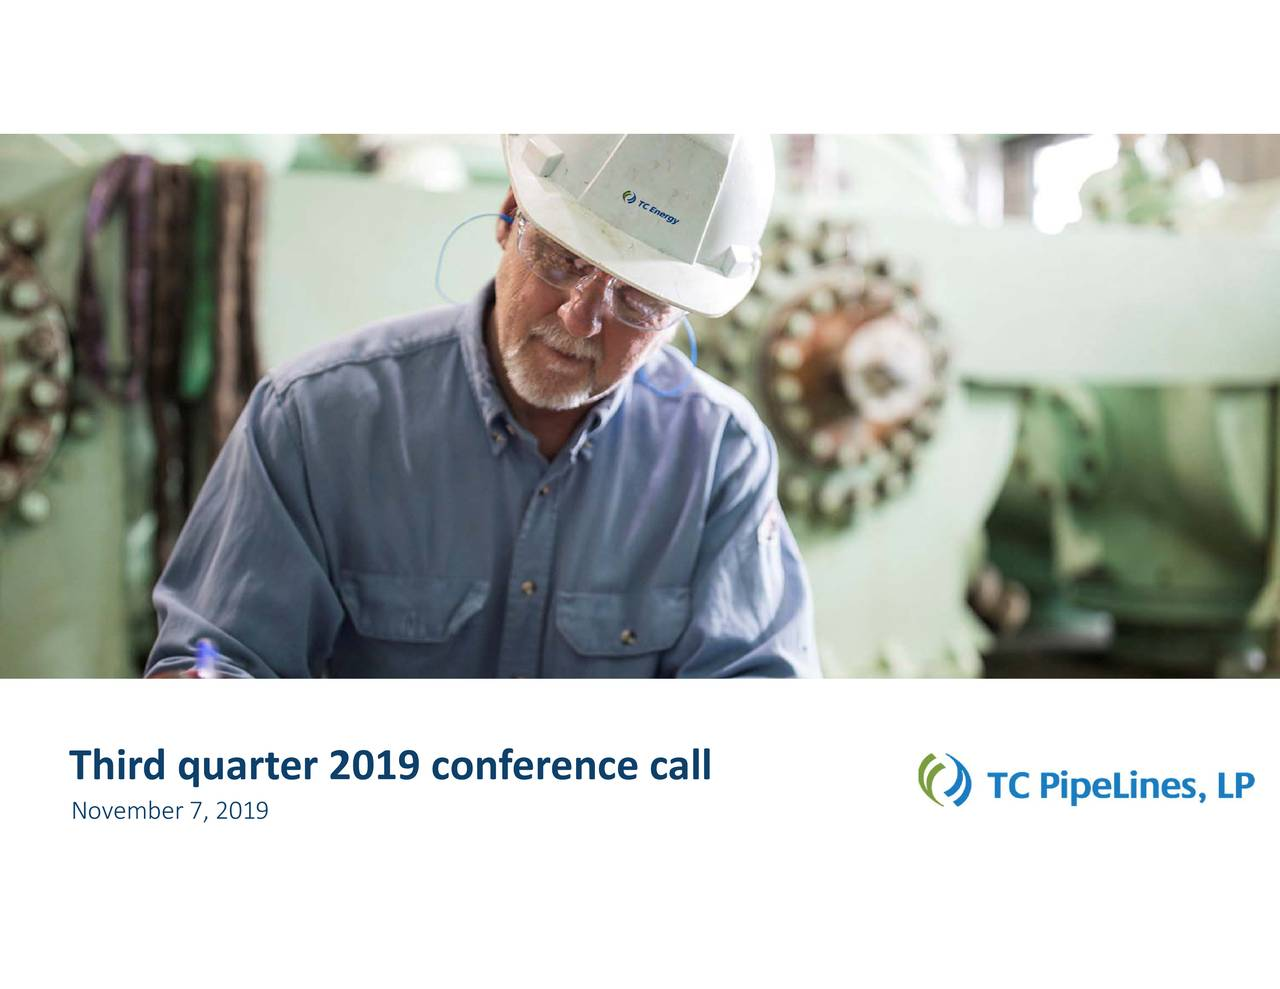 Third quarter 2019 conference call